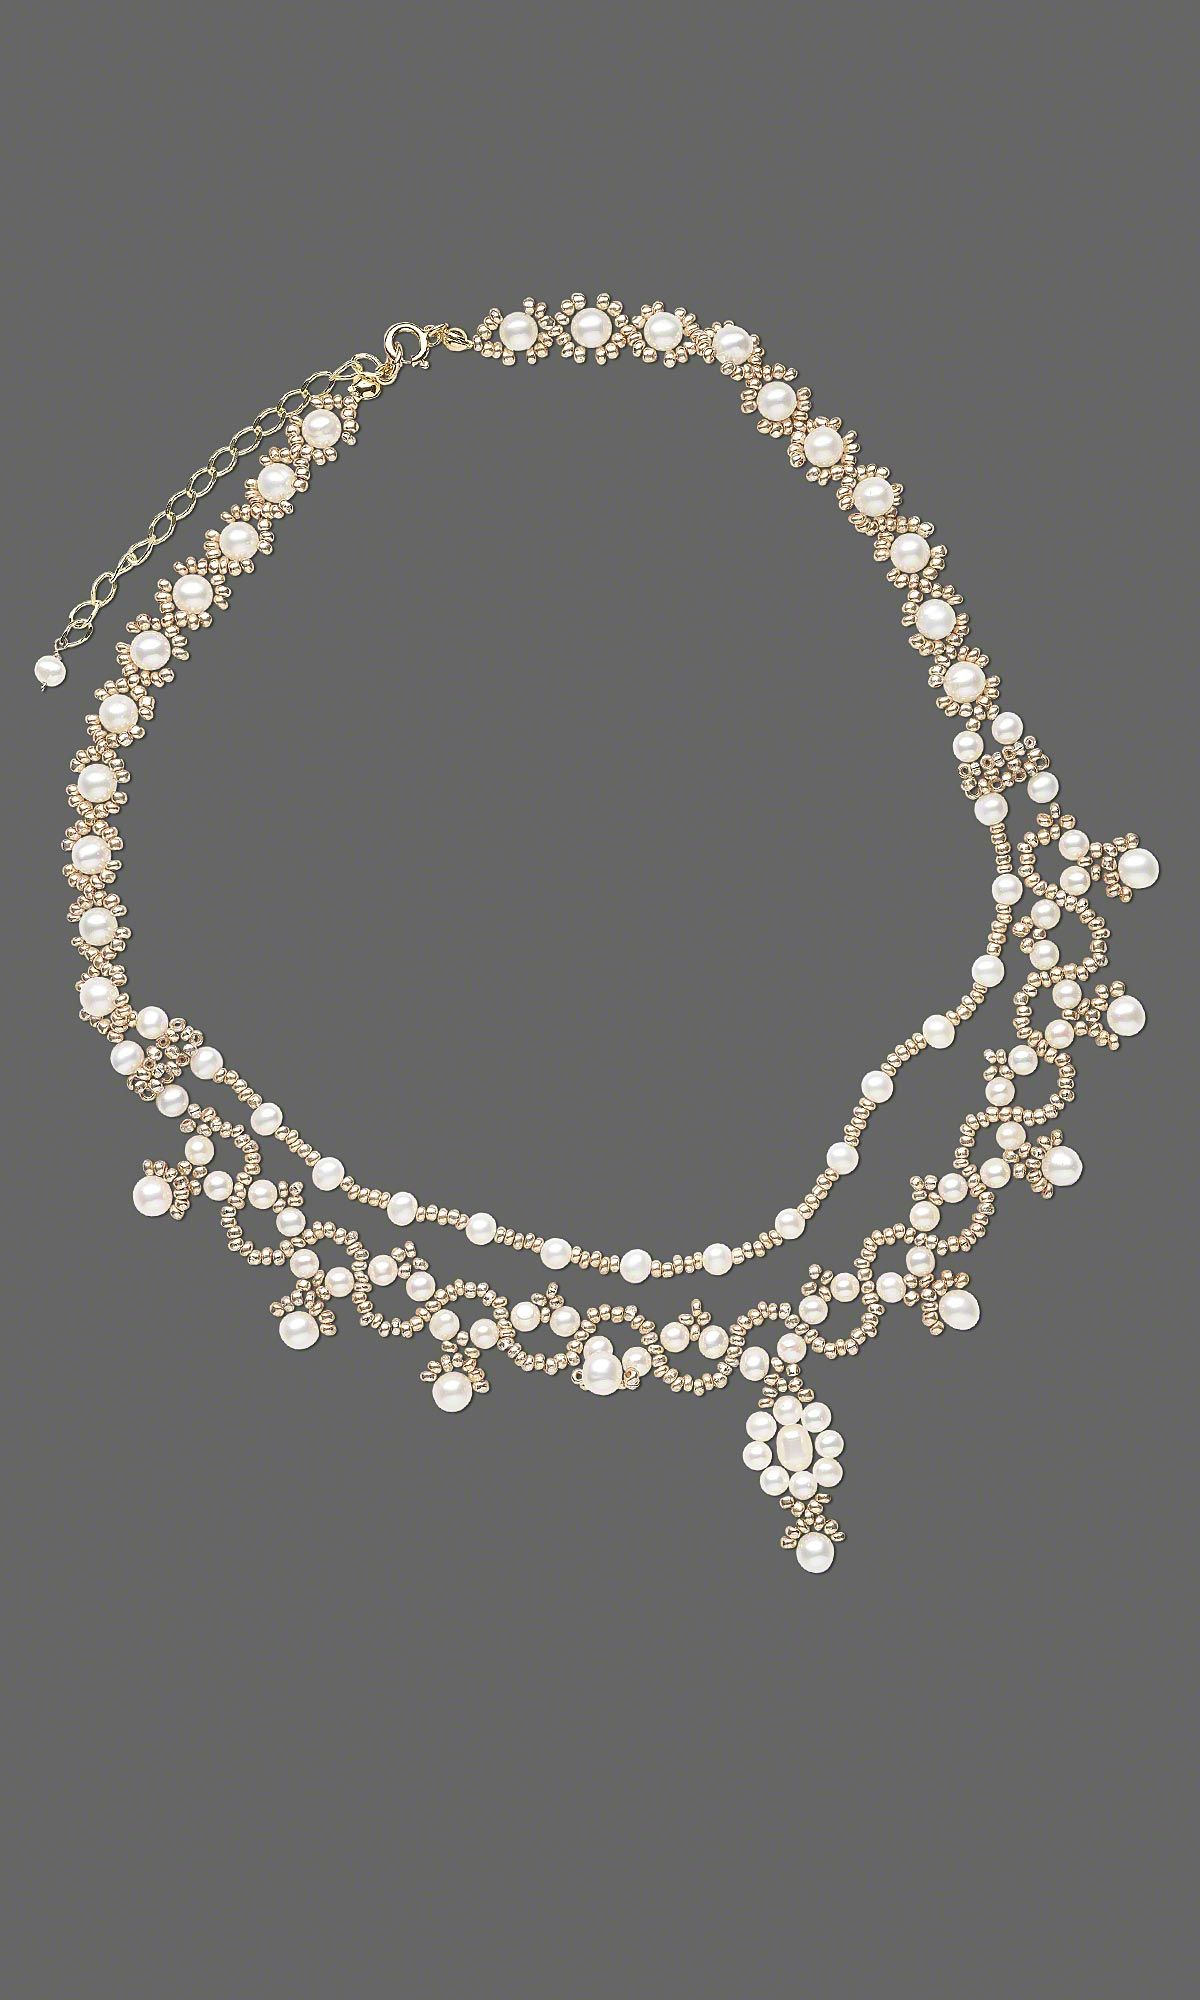 Jewelry Design - Double-Strand Necklace with White Lotus™ Cultured Freshwater Pearls and Seed Beads - Fire Mountain Gems and Beads